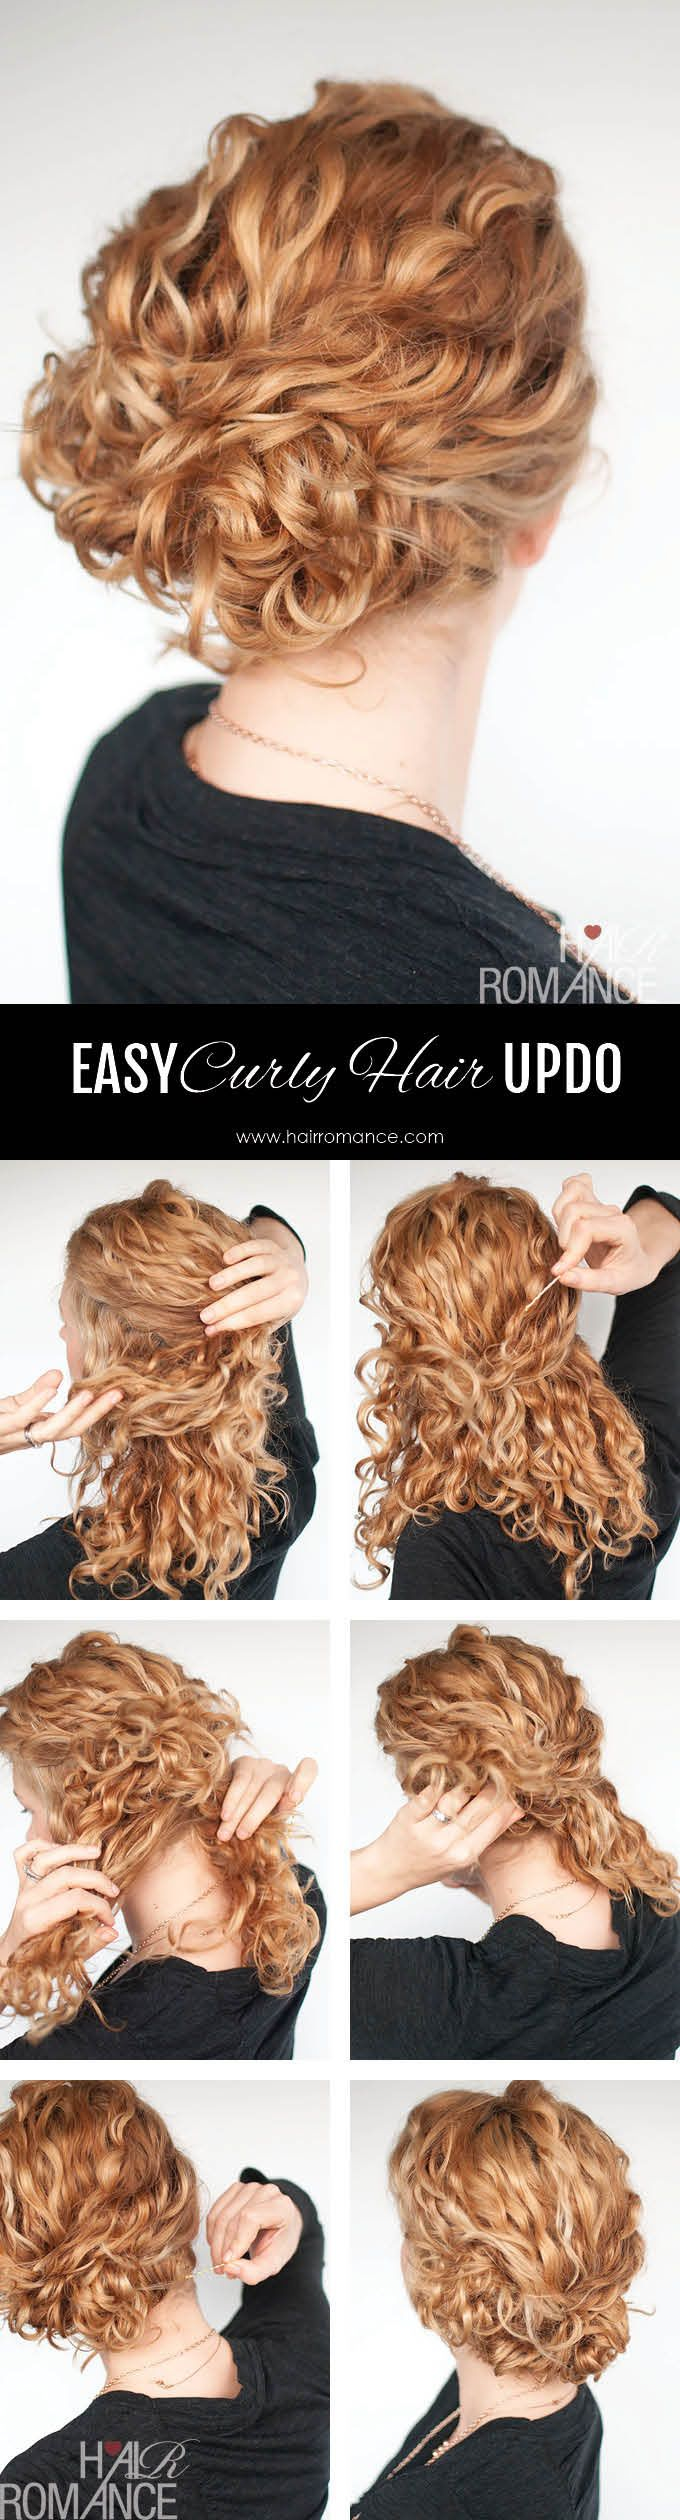 Hair Romance - Curly Hair Tutorial - easy curly updo. Yesssss this will do fine for everyday